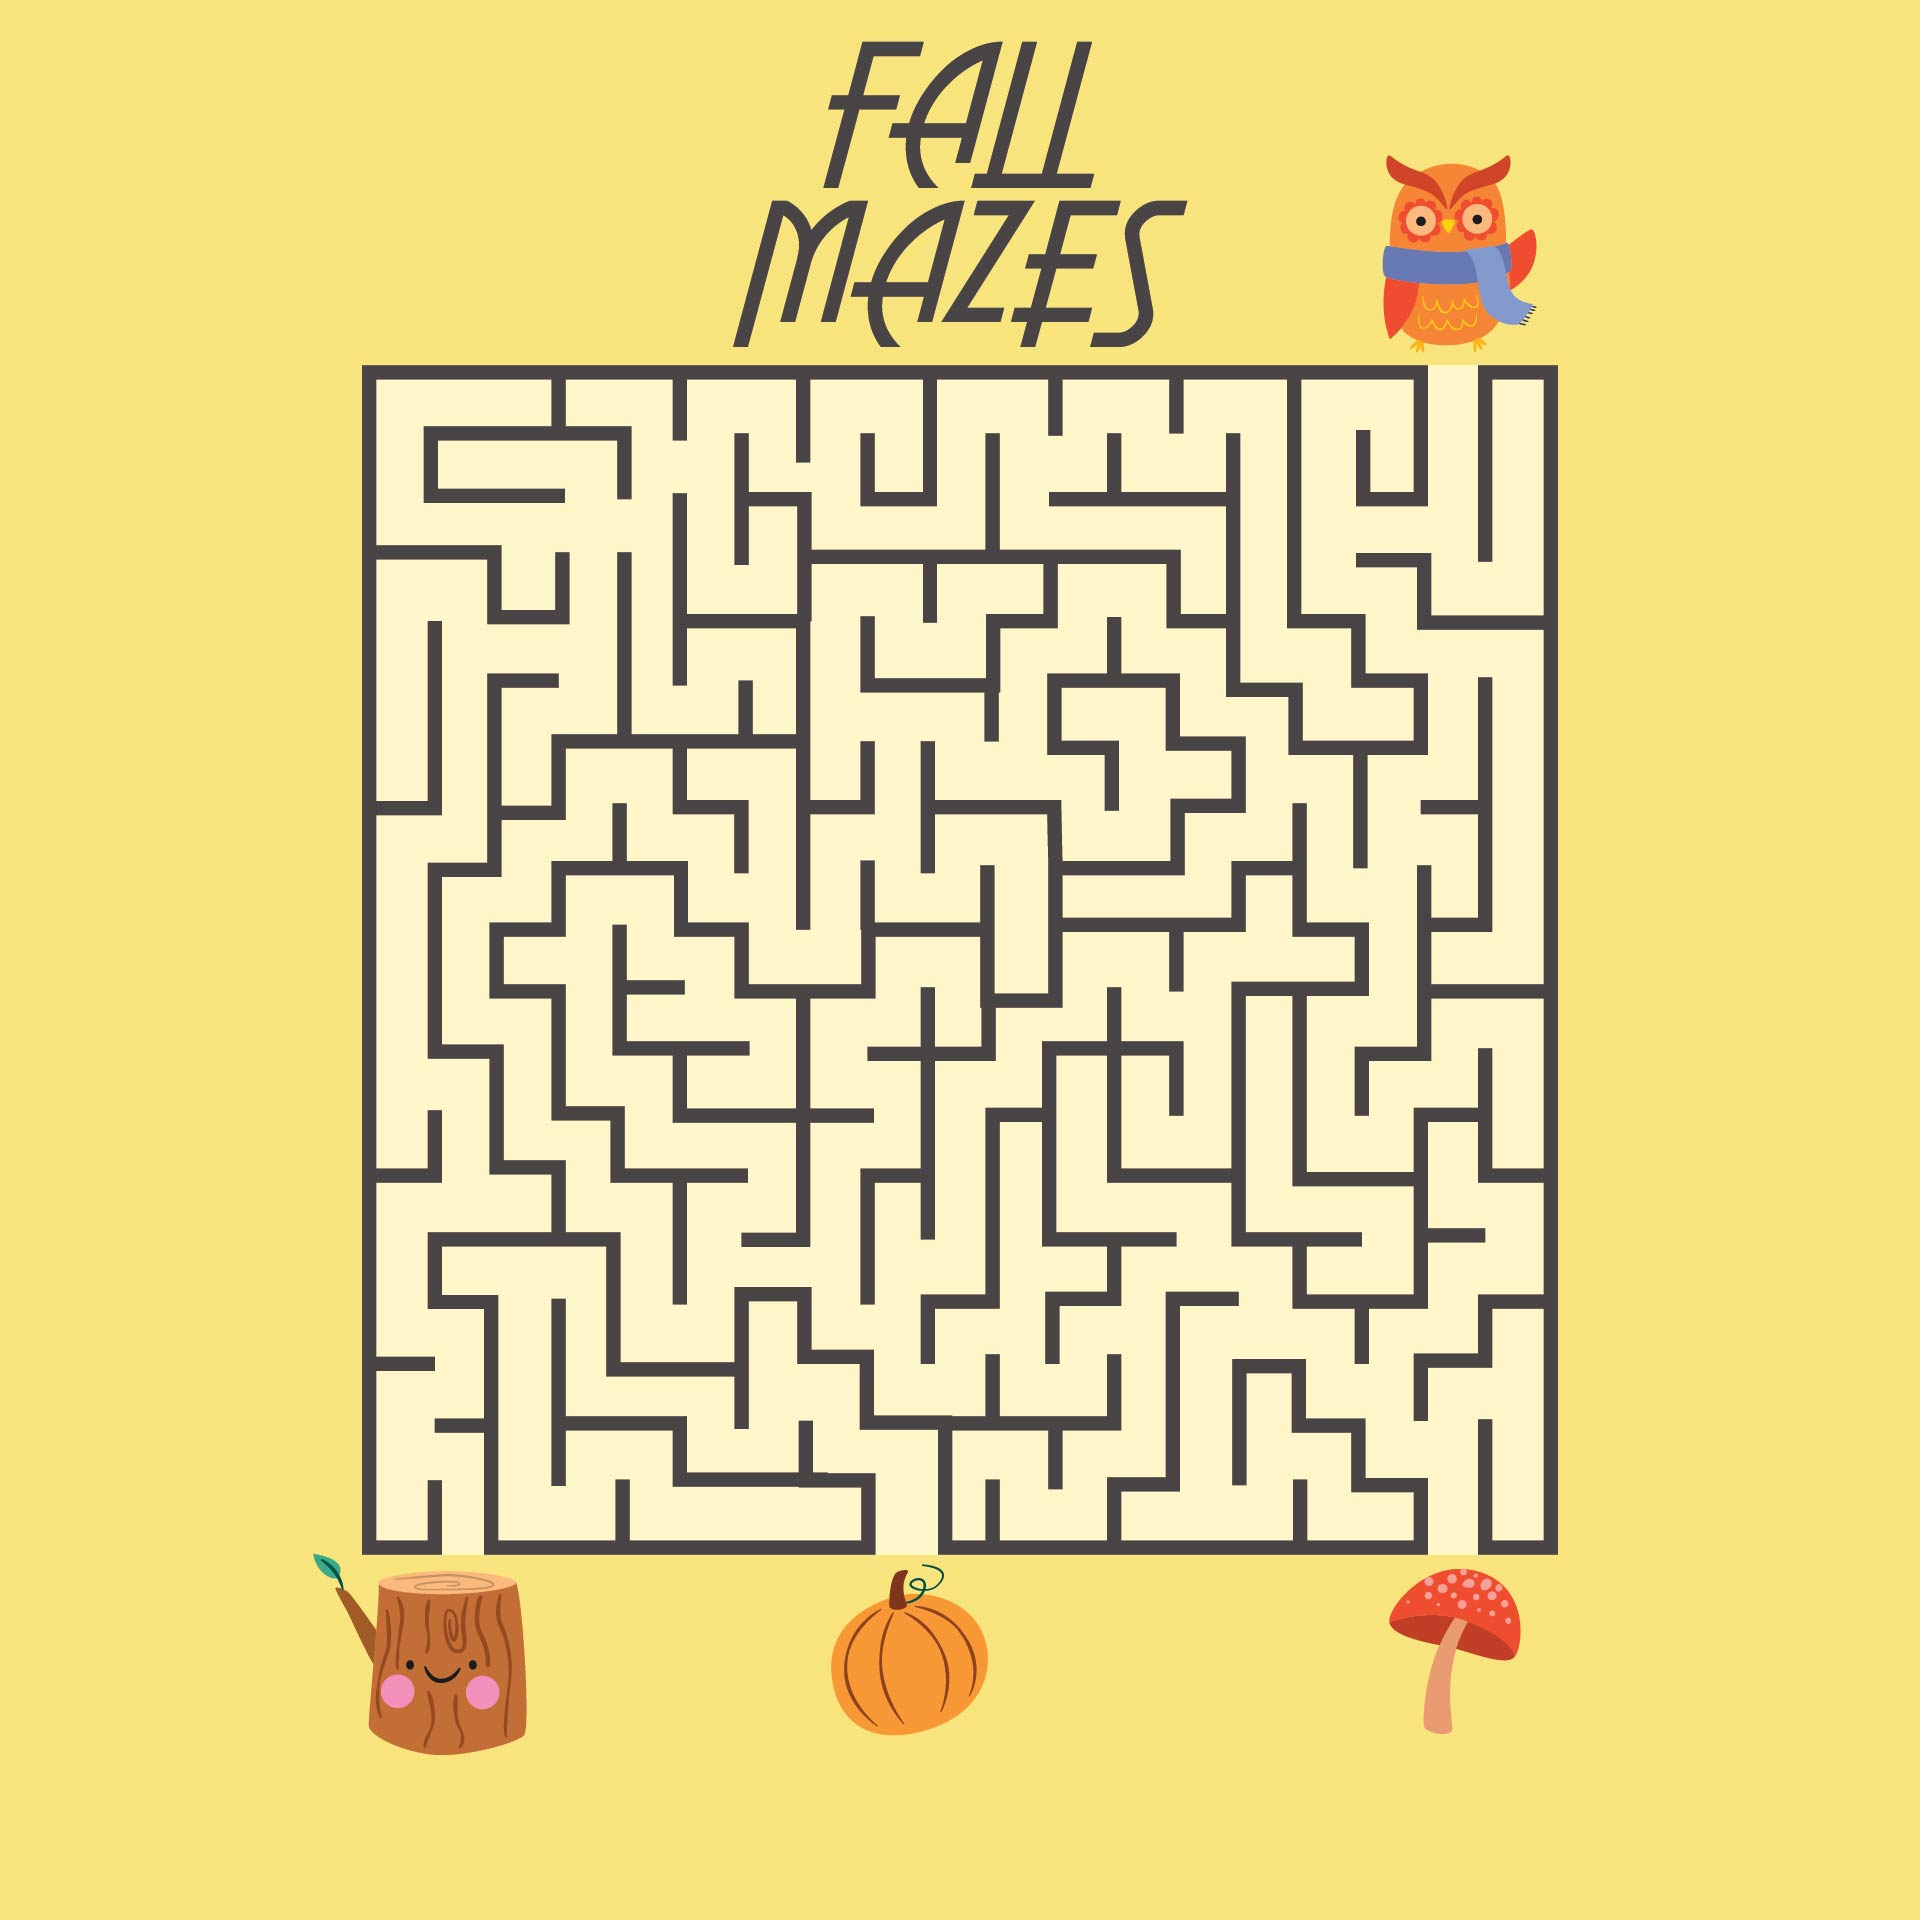 Autumn Leaf Maze Printable